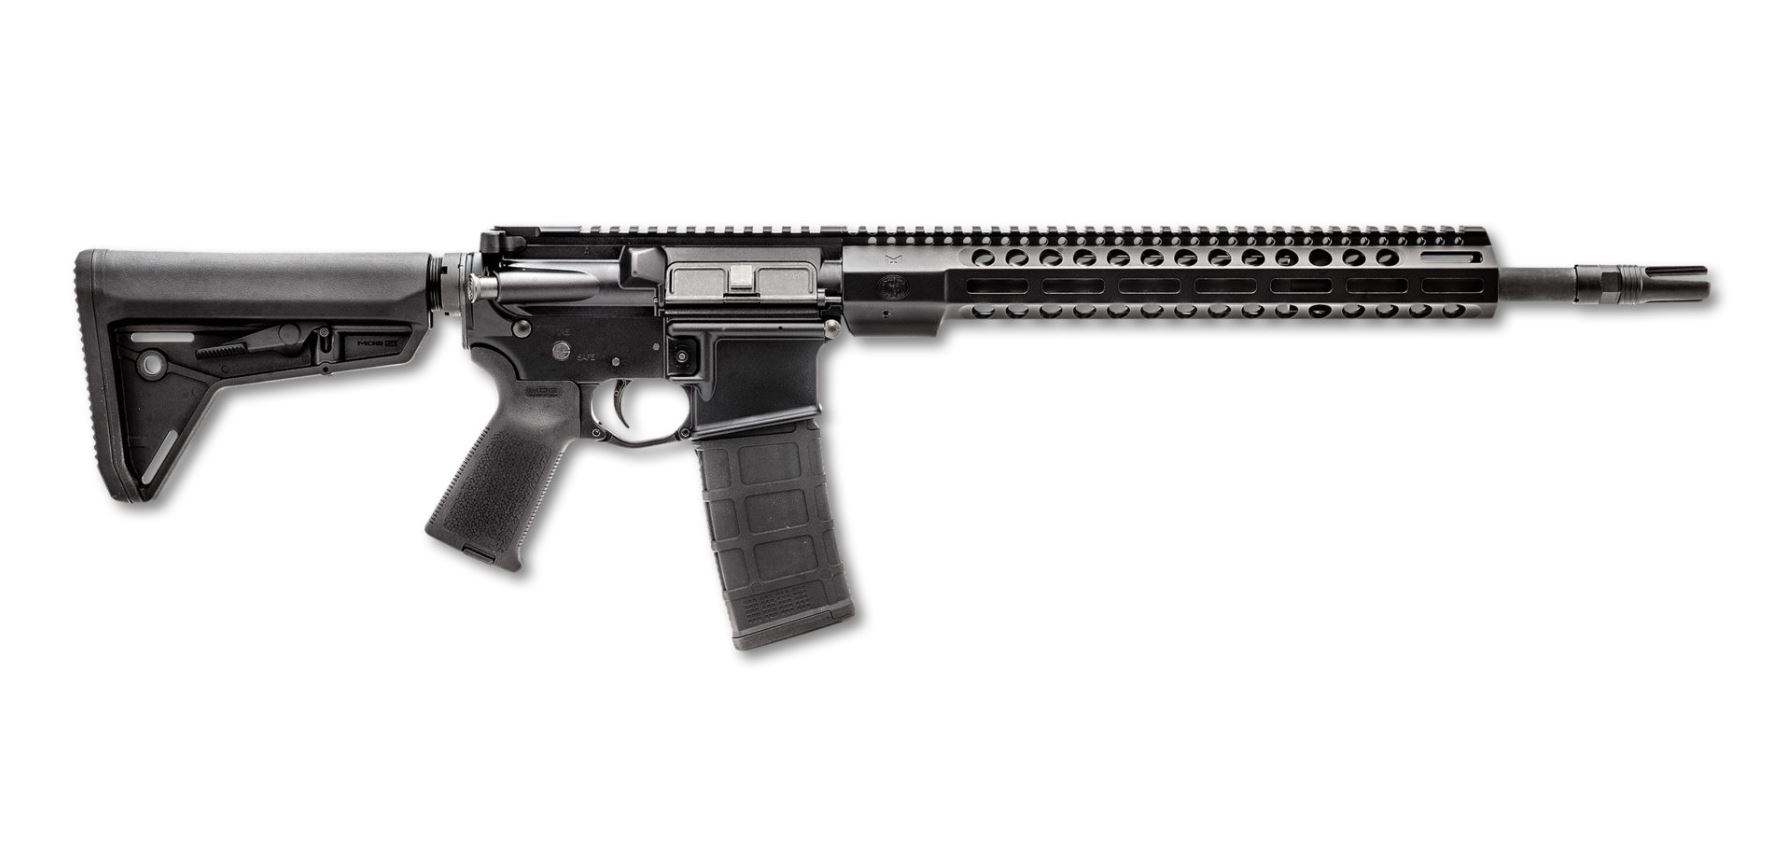 FN FN15 Tactical Carbine II 223 Rem | 5.56 NATO